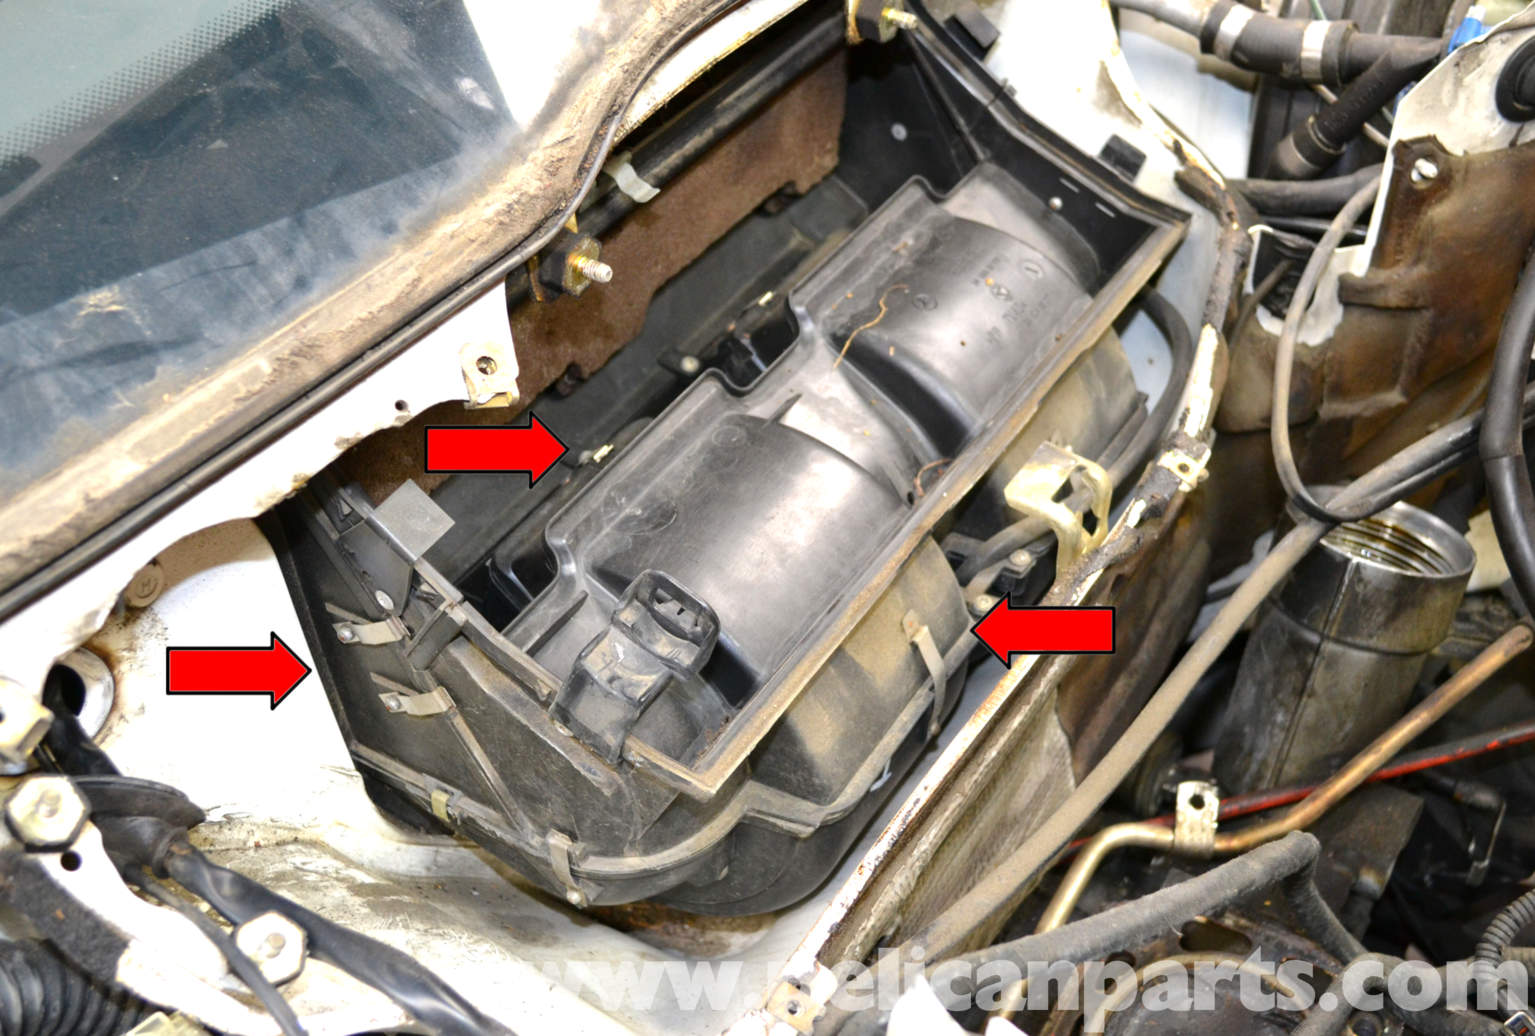 1989 Mercedes Benz Blower Motor Replacement on Blower Motor Replacement Parts